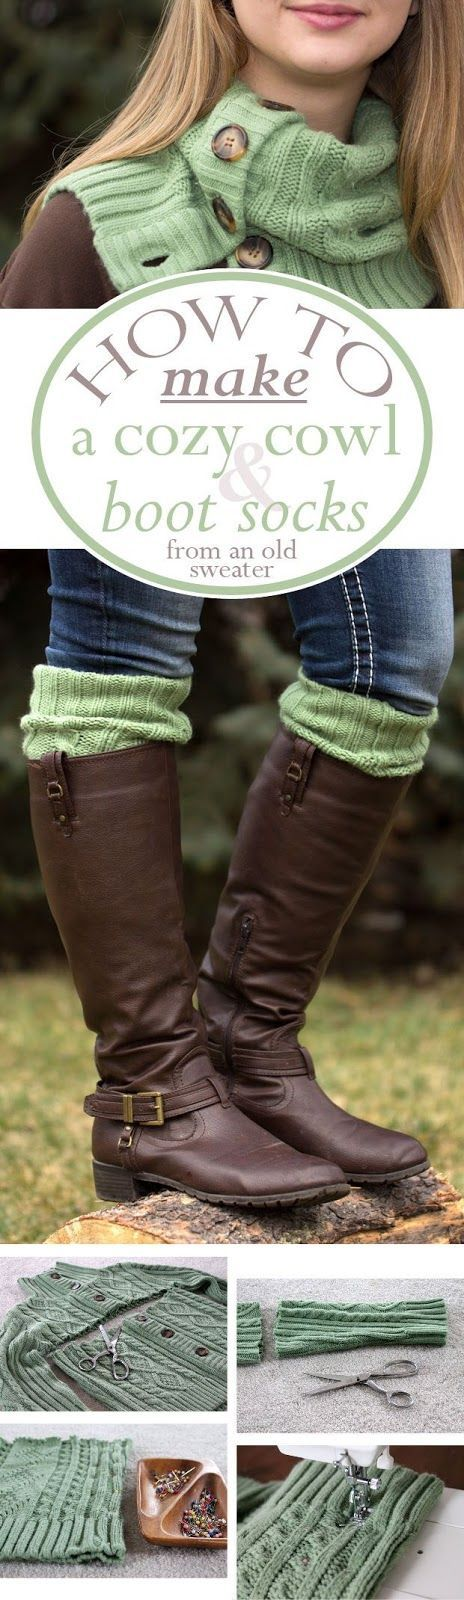 Warm DIY Ideas: Redesign Your Old Winter Clothes In Something New